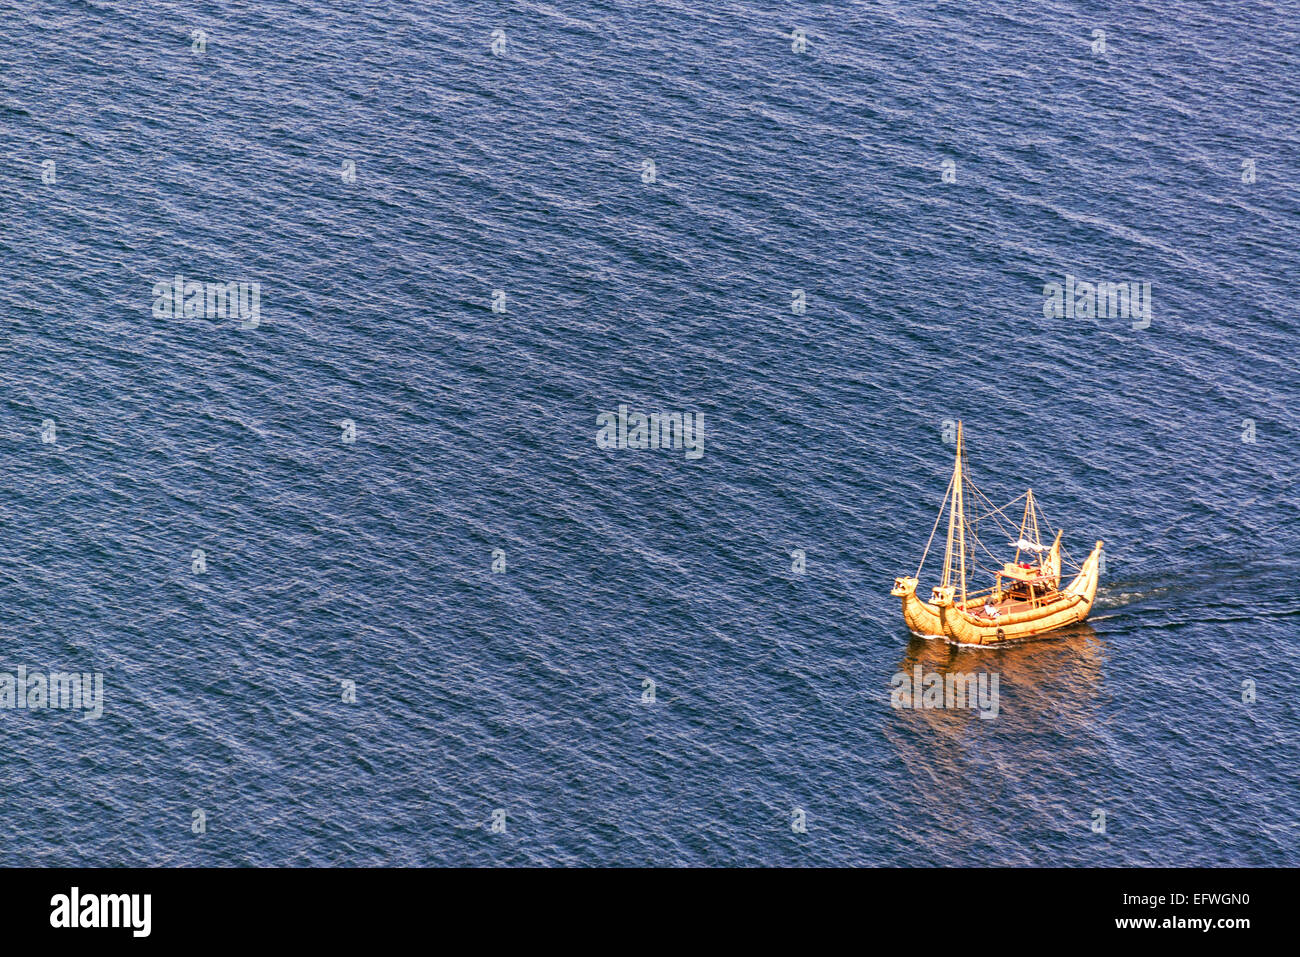 Reed boat, or totora, on Lake Titicaca near the Isla del Sol in Bolivia - Stock Image